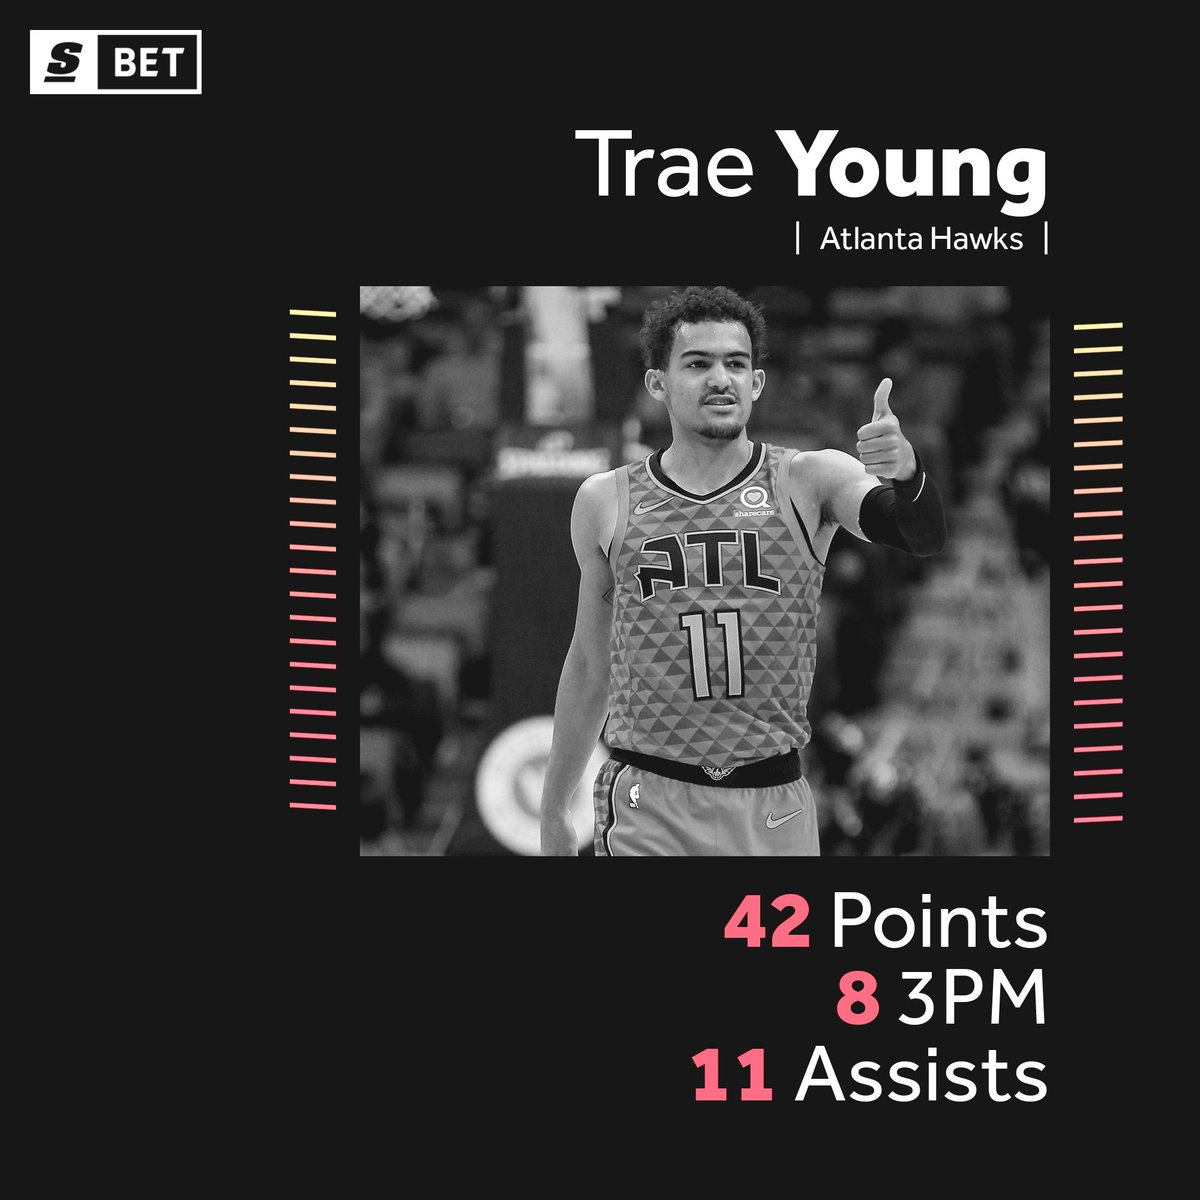 Season-high 42 PTS and the W for Trae Young. ❄️